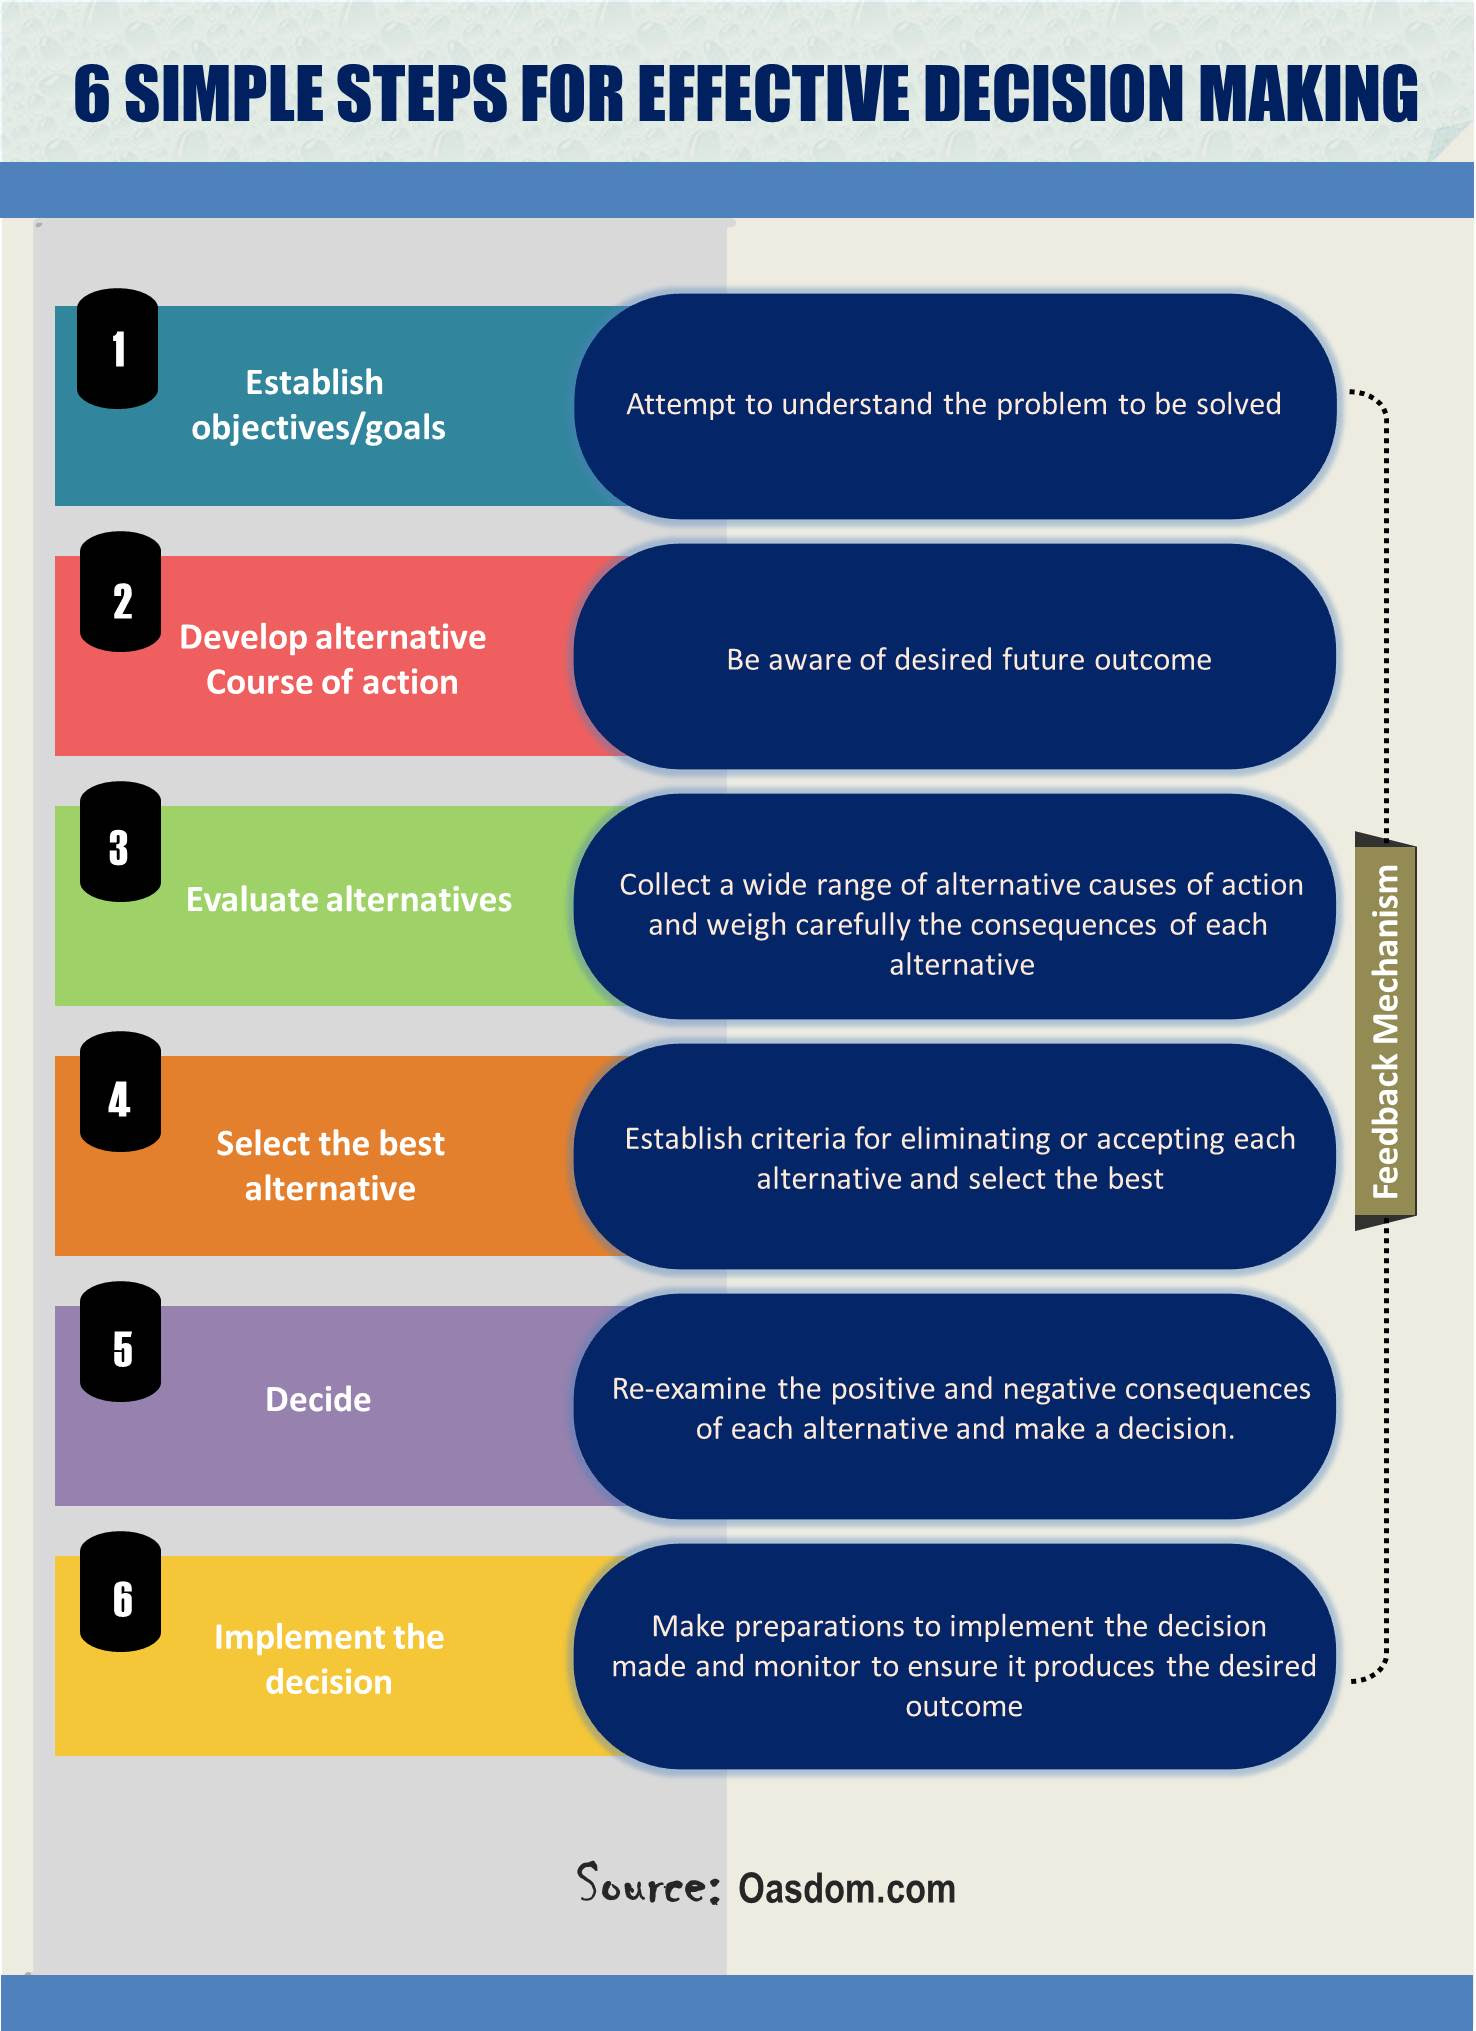 6 simple steps for effective decision making pics 1